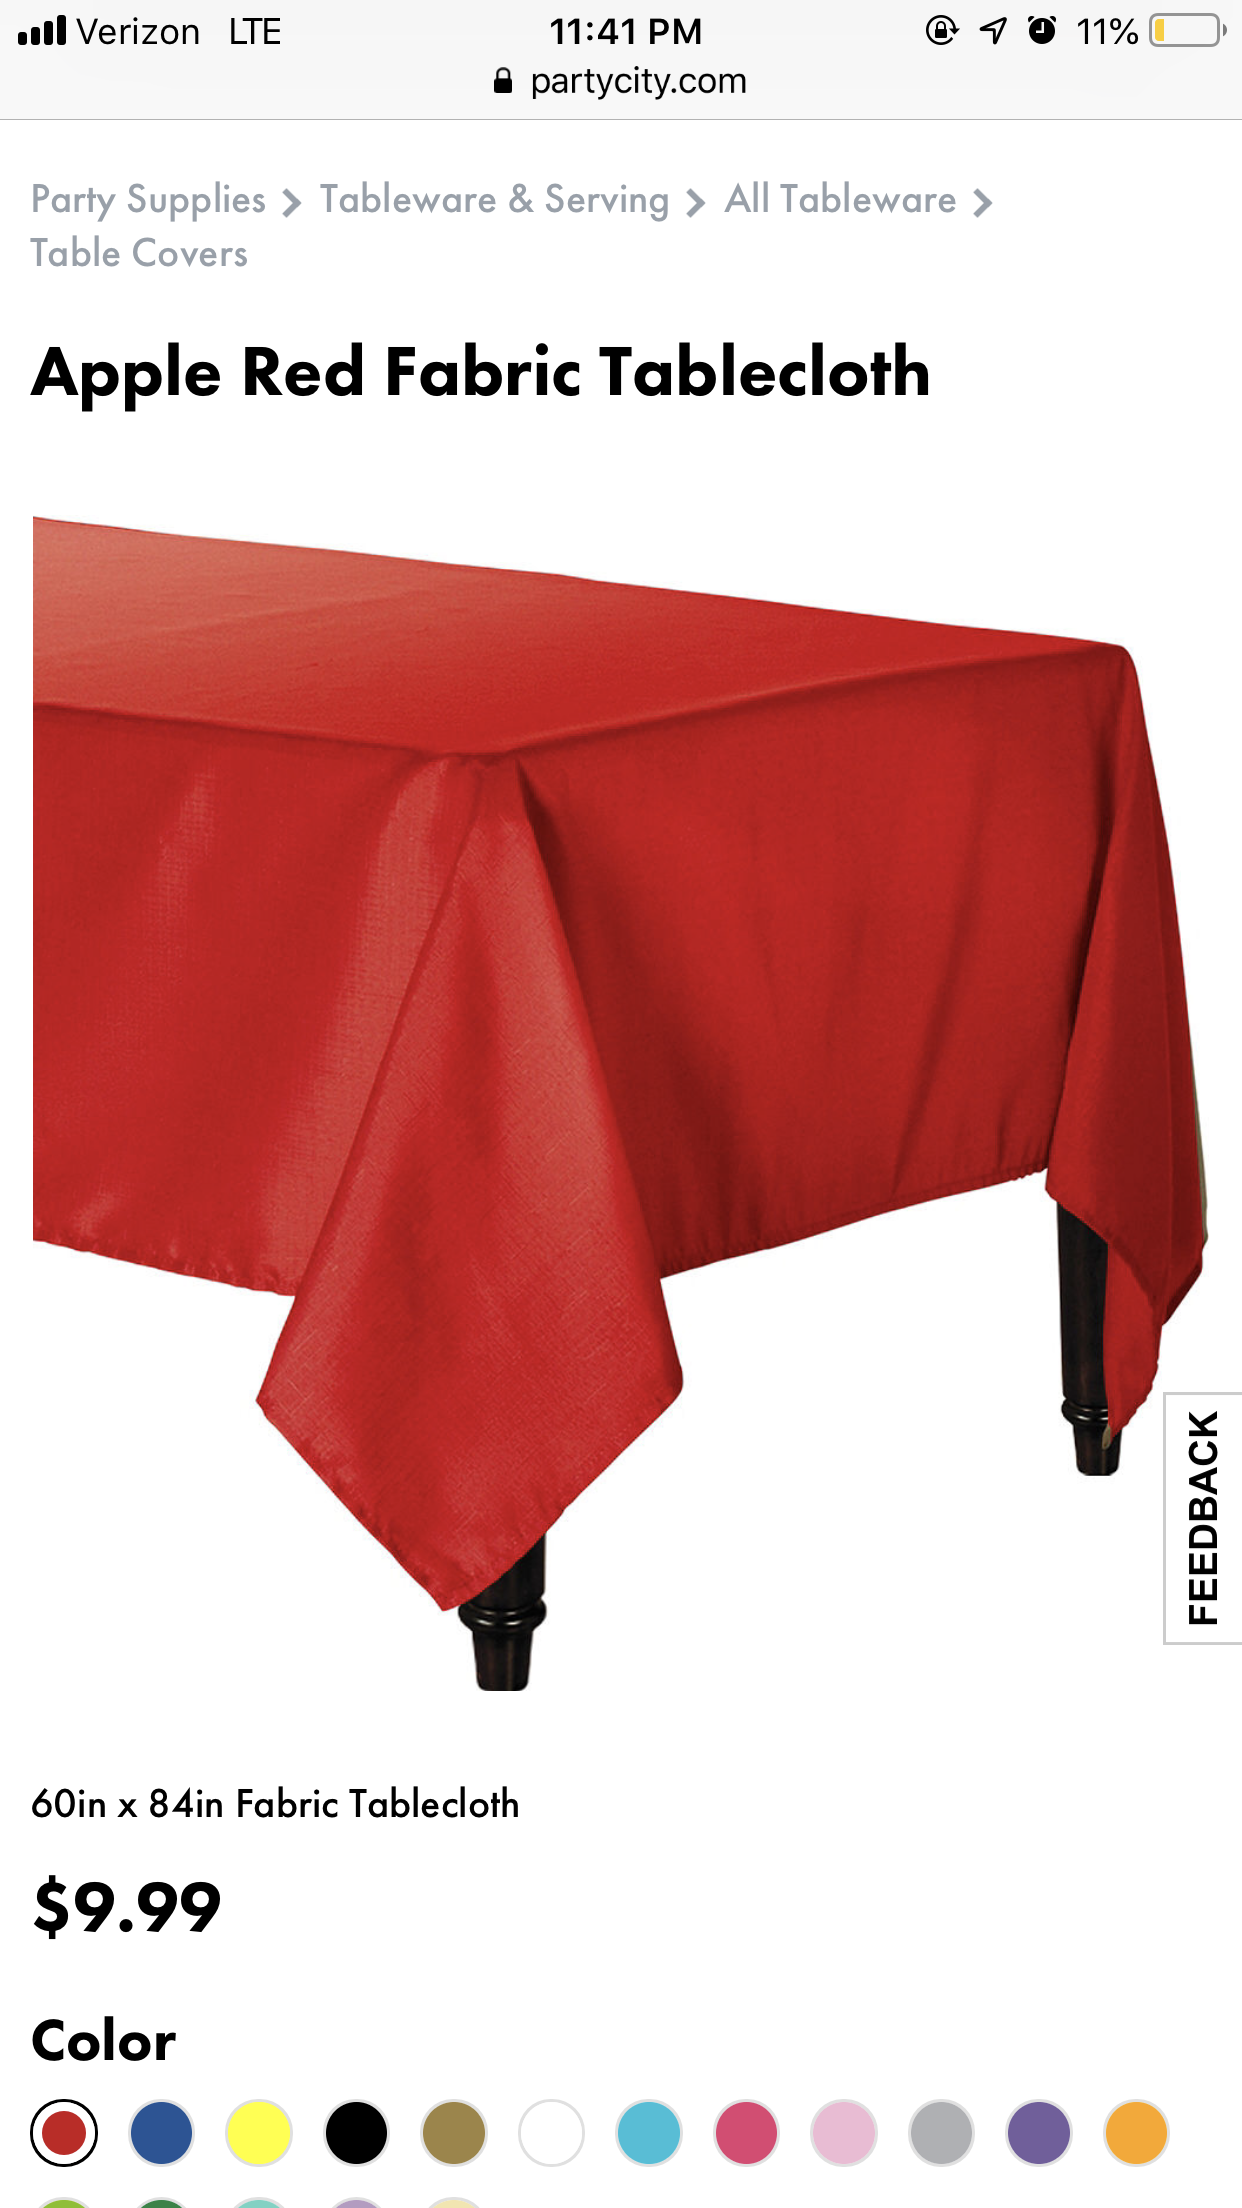 Pin by Coralie Lans on Financial Tablecloth fabric, Red